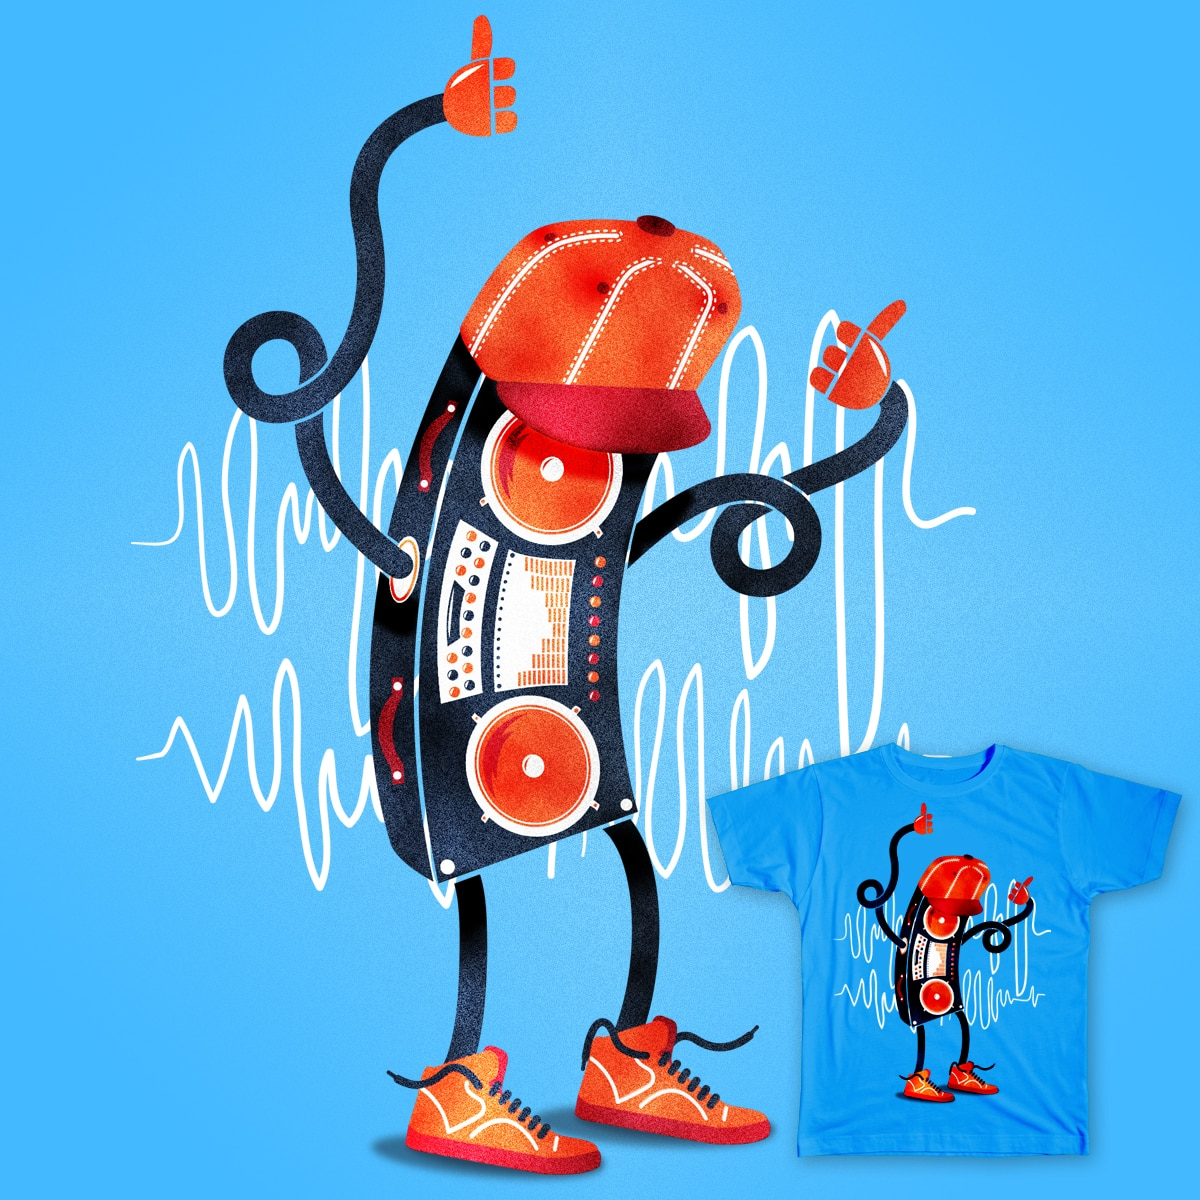 Boombox by thenicc on Threadless